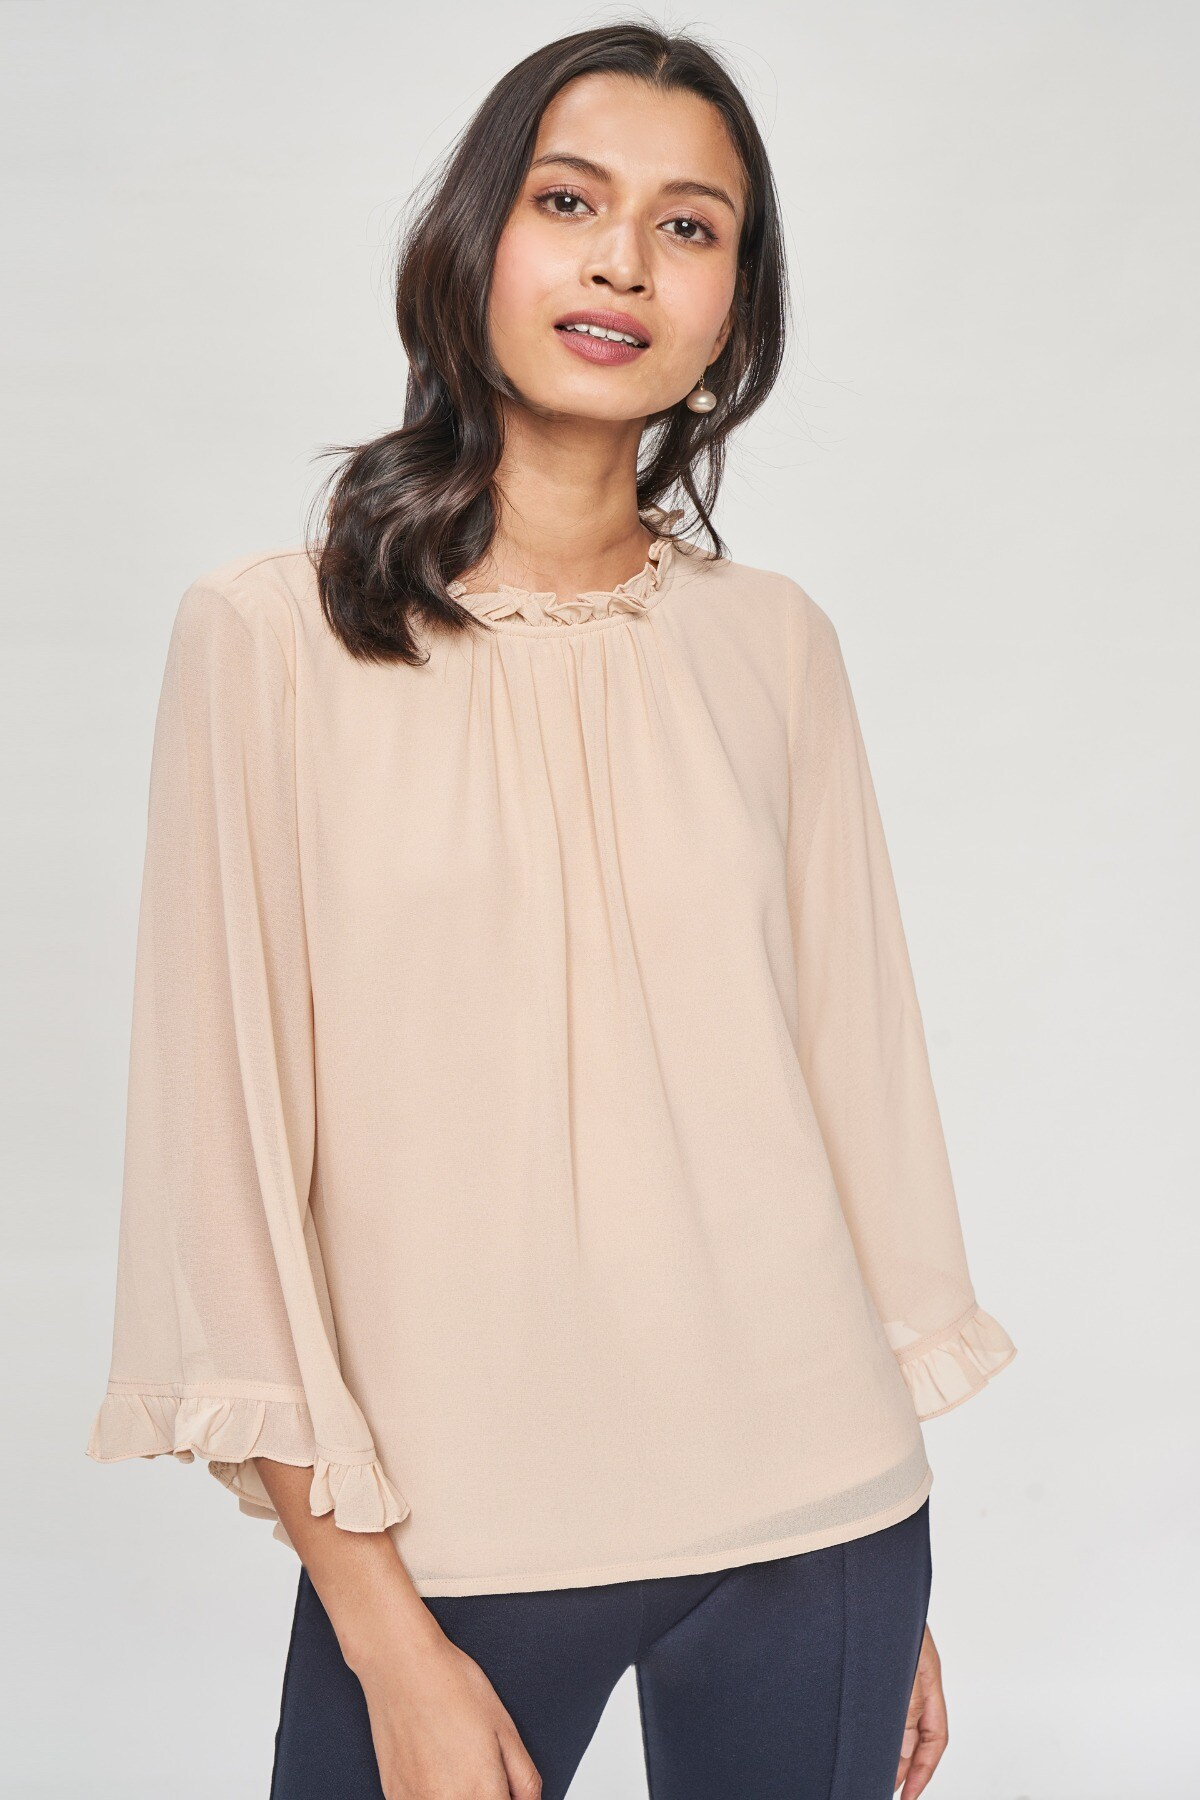 AND   Beige Solid Gathers Or Pleats A-Line Top